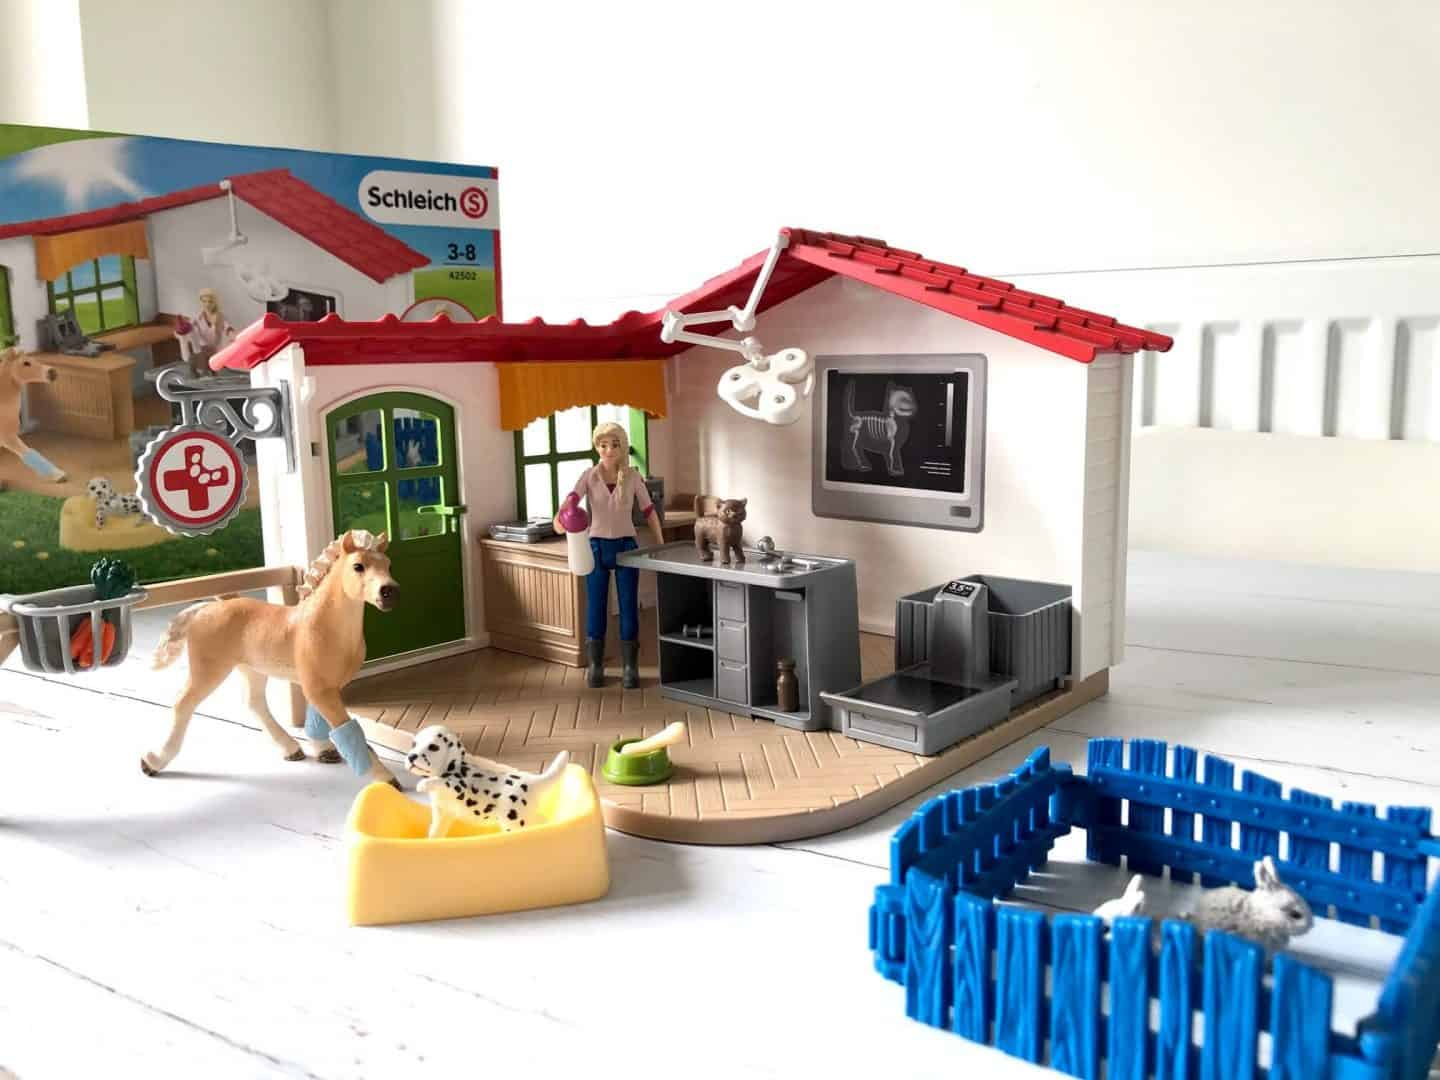 Schleich Farm World Veterinarian practice playset